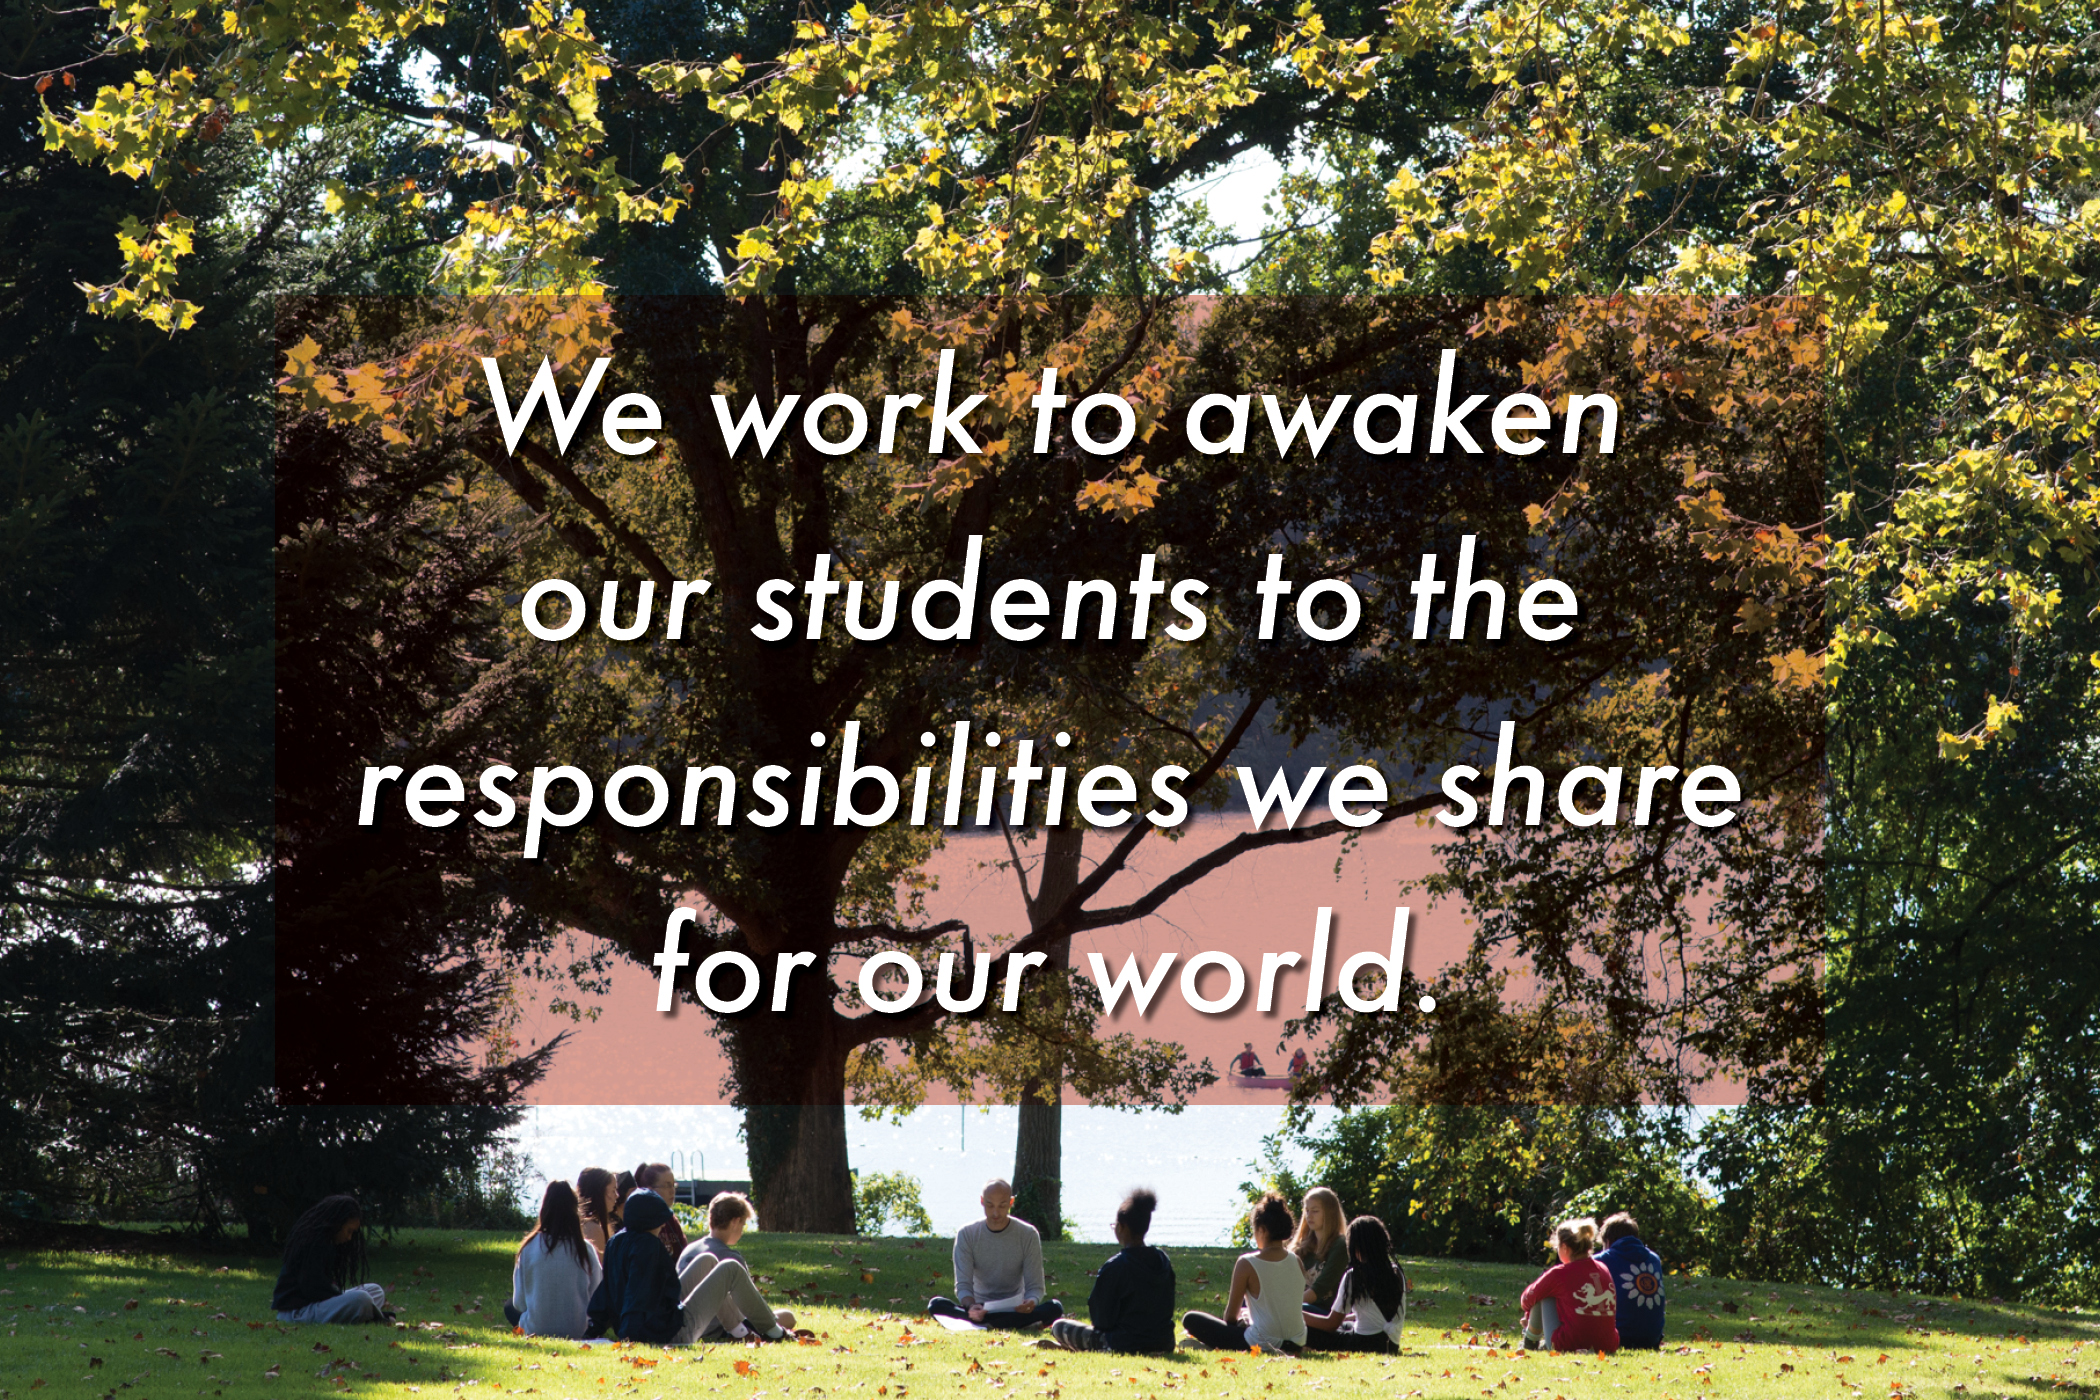 We work to awaken our students to the responsibilities we share for our world.